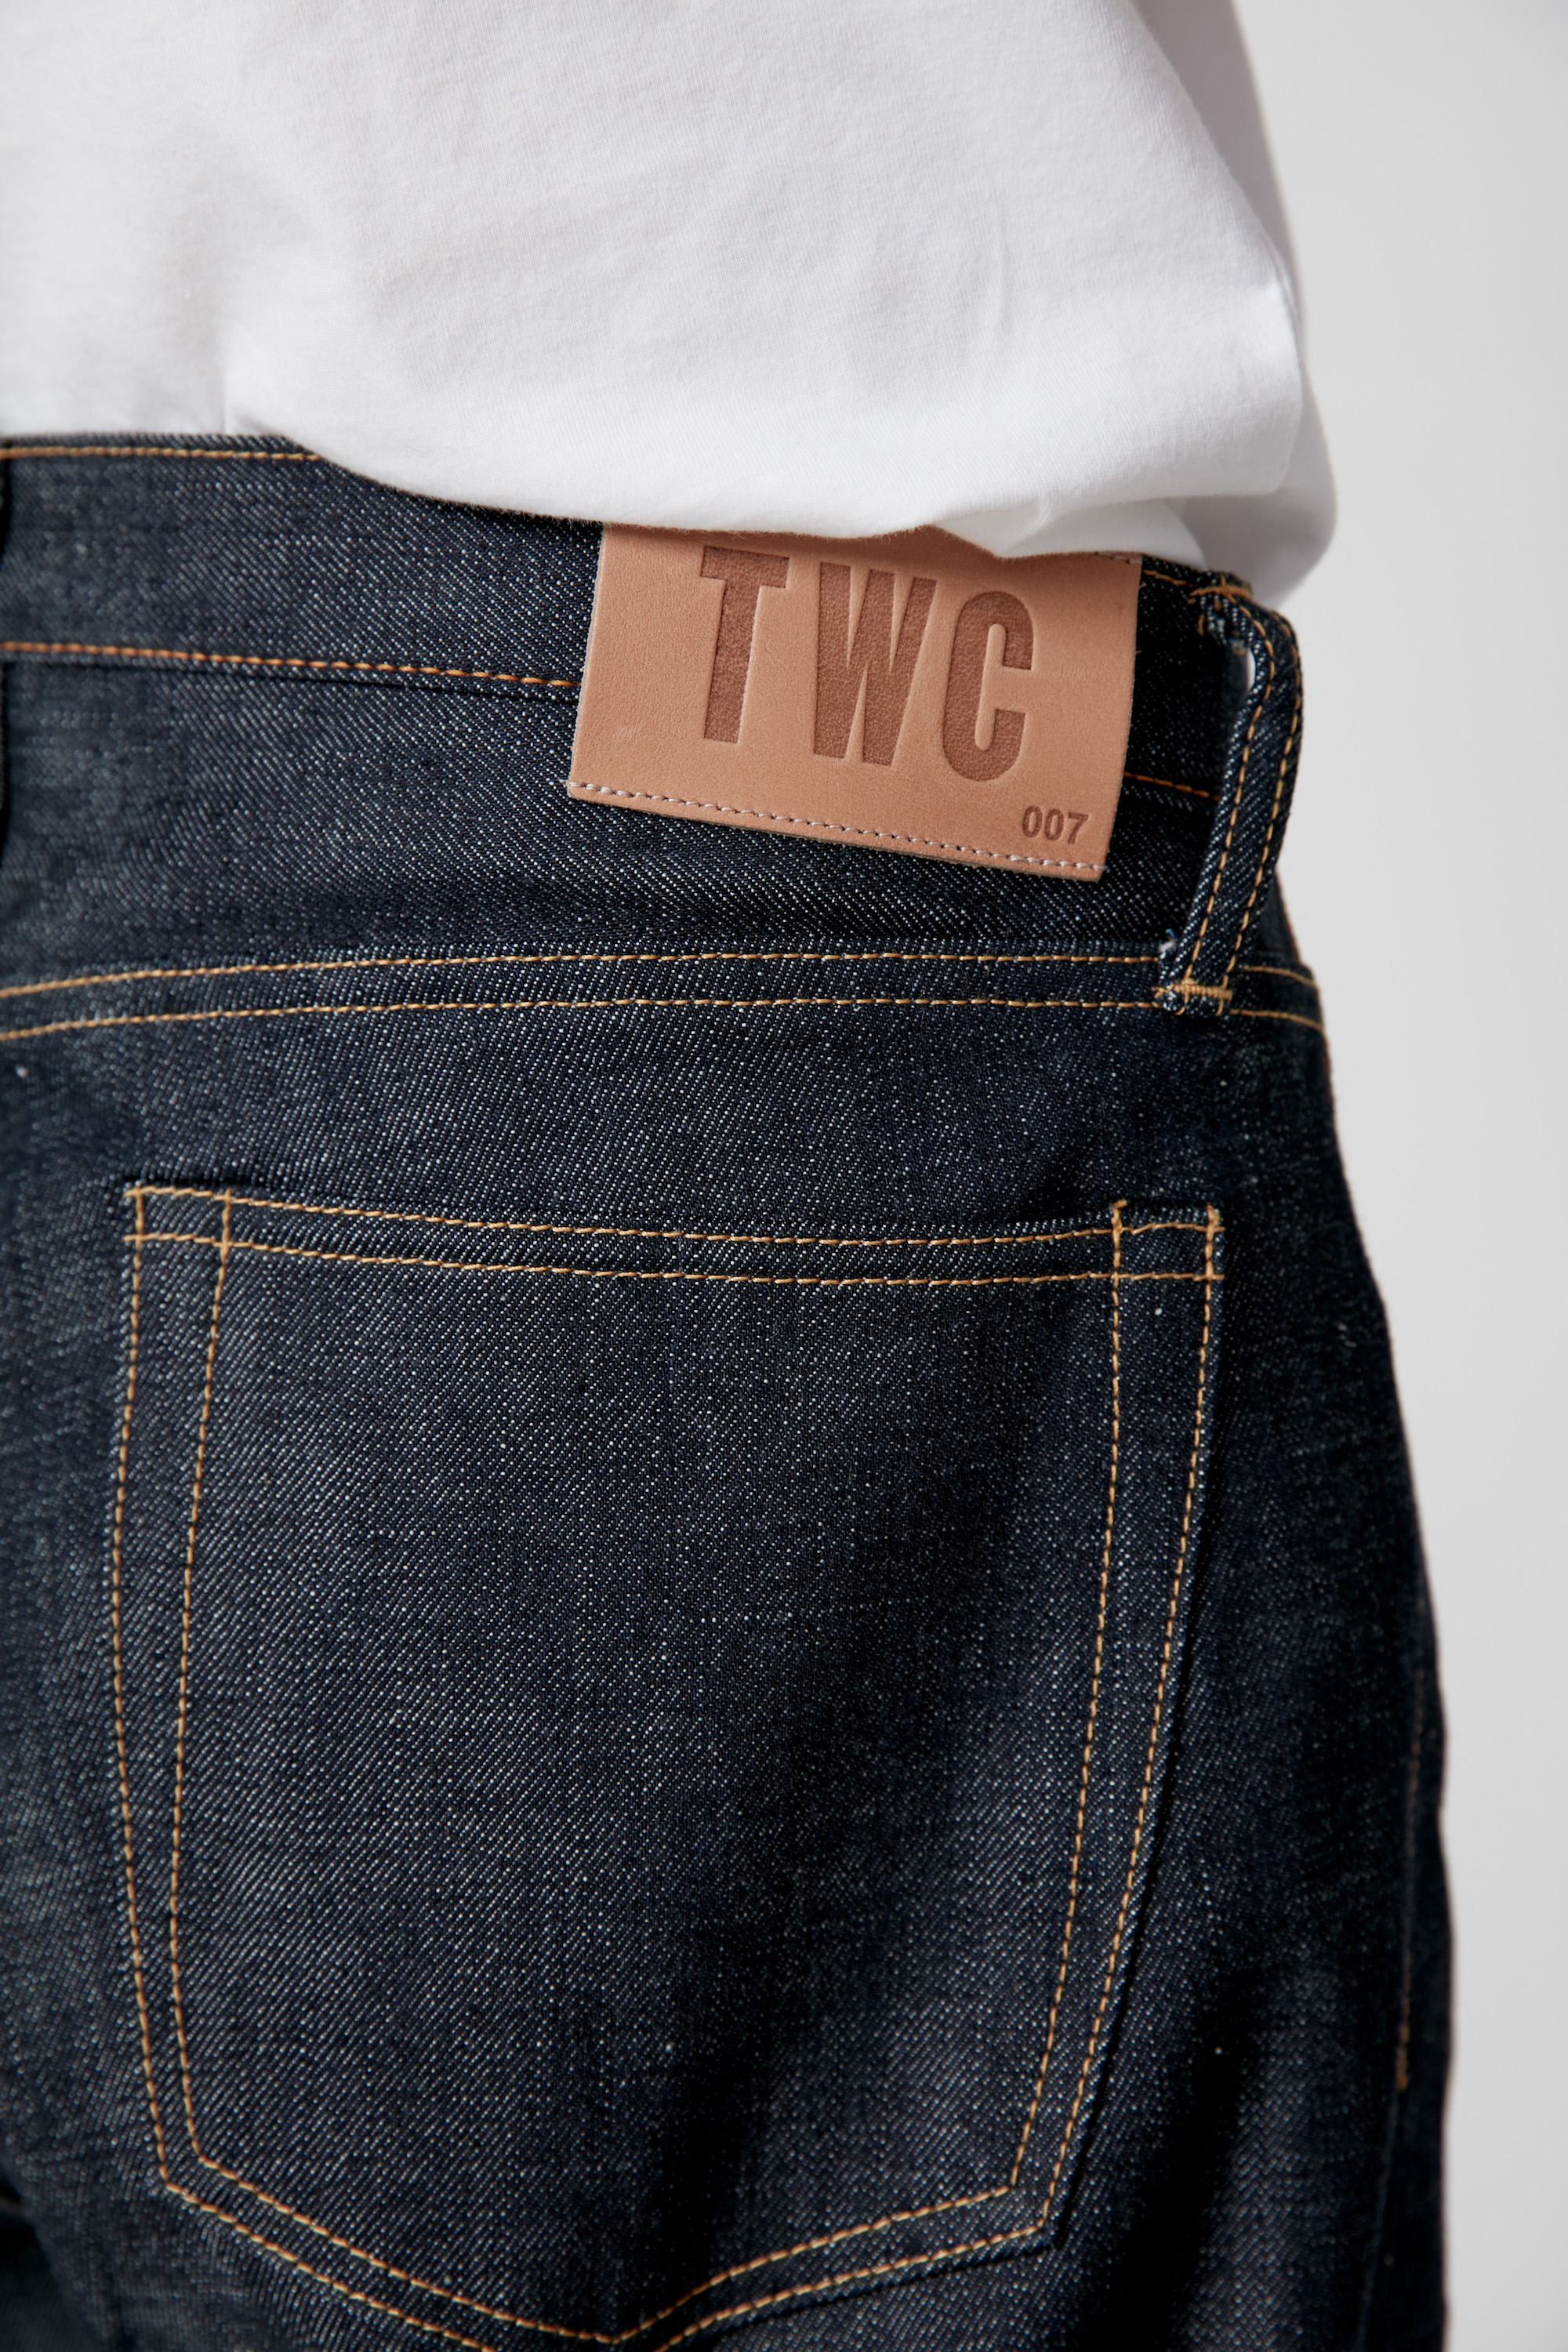 The Worker's Club (TWC) jeans